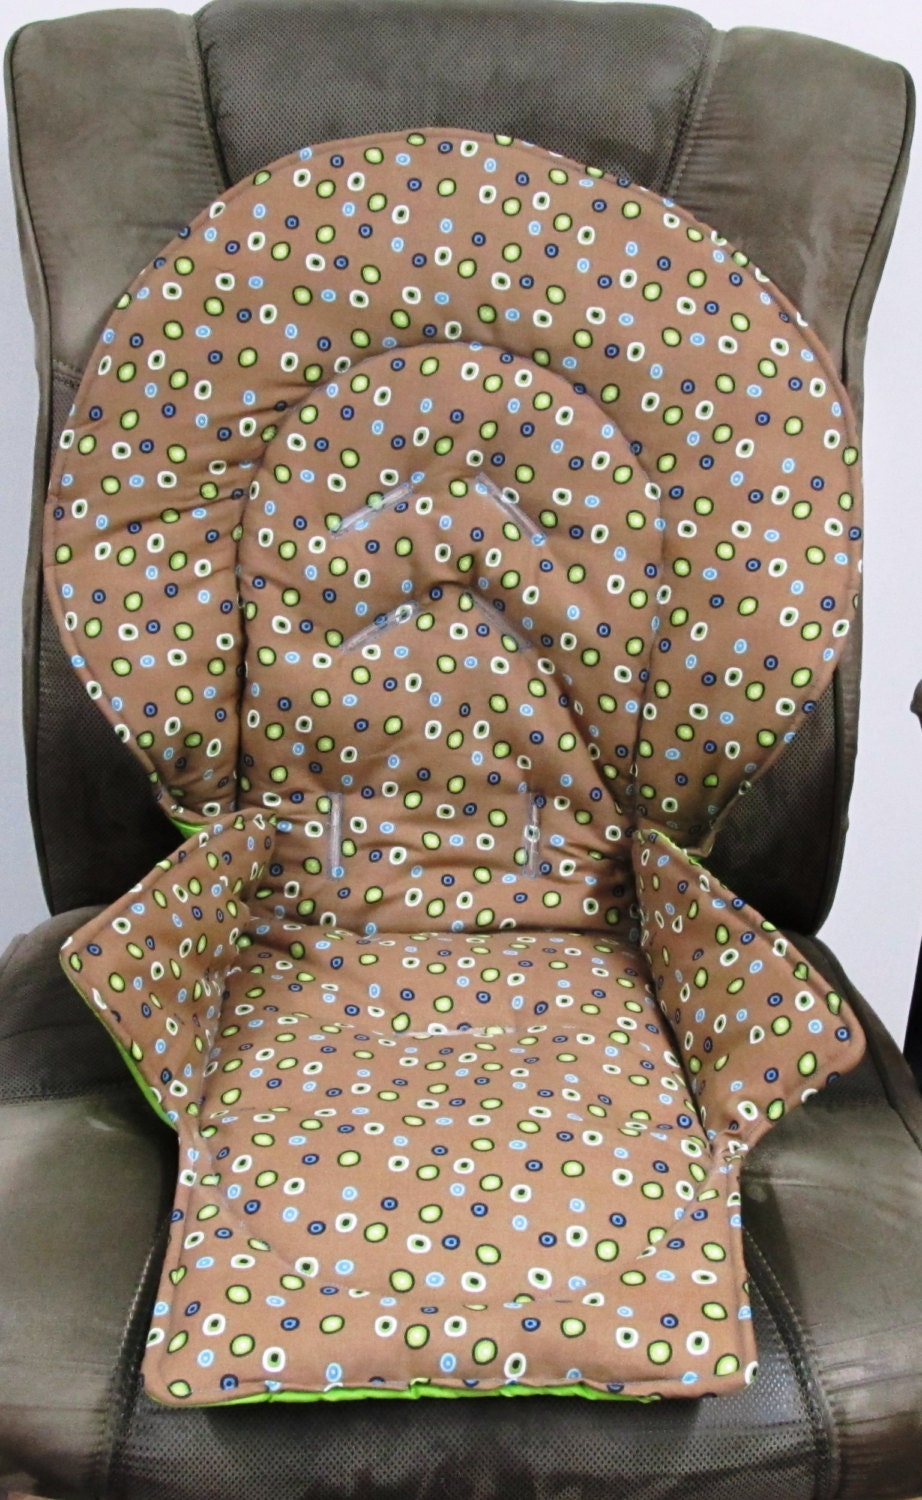 Find great deals on eBay for High Chair Replacement Cover in Baby High Chairs. Shop with confidence. Find great deals on eBay for High Chair Replacement Cover in Baby High Chairs. Baby Trend hight chair cushion cover only. Beige, green and brown, little animals design. This will fit the Baby Trend hight chair. Good looking design, see picture.